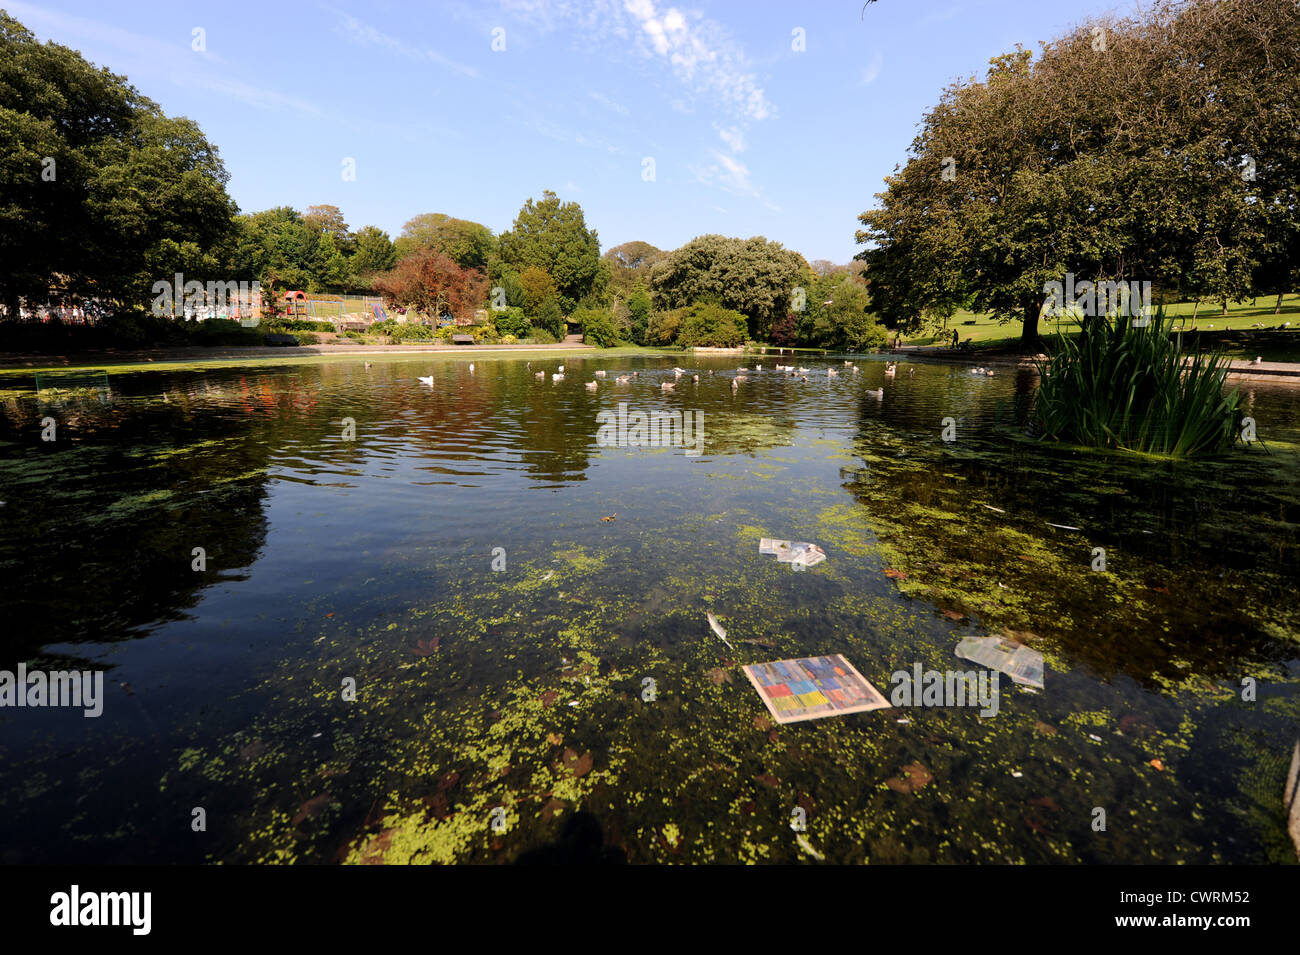 Rubbish In Pond Stock Photos & Rubbish In Pond Stock Images - Alamy